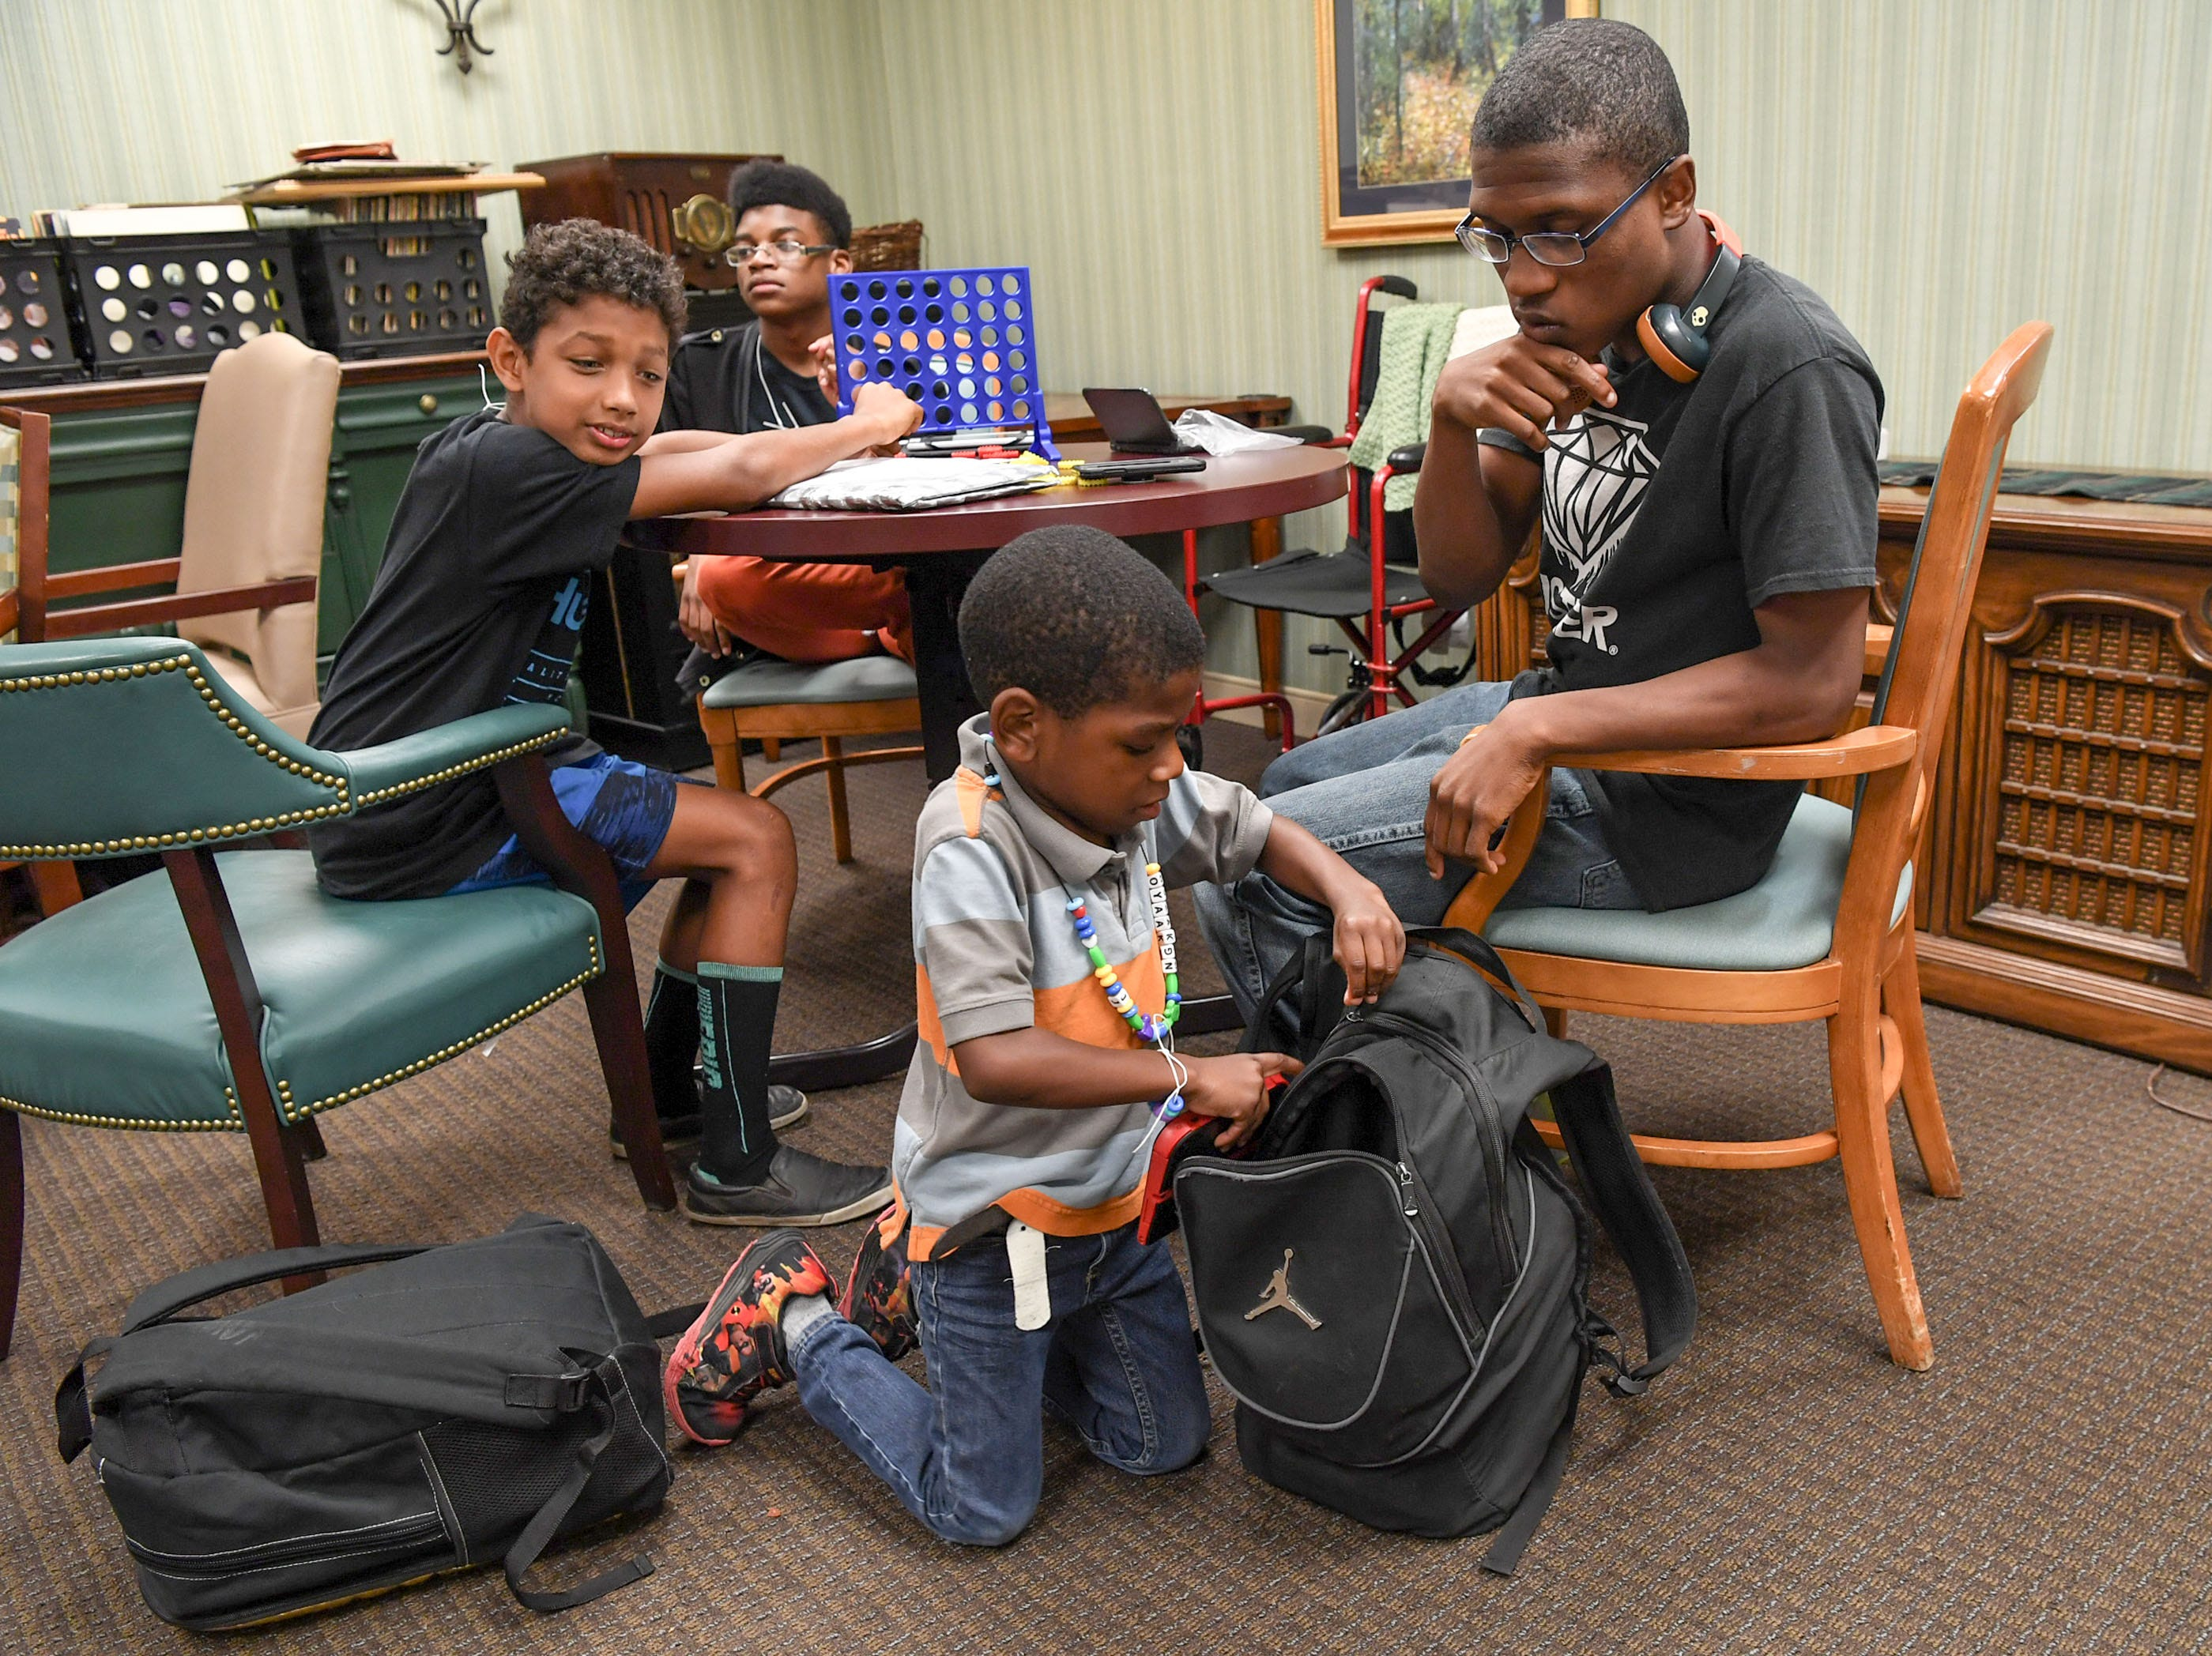 Jaeden Johnson, 8, below, gets into his brother Rae Walton, 19, near J.J. Lewis, 12, and William Royal, 14, at the Davis Community nursing home and assisted living facility in Wilmington, North Carolina on Thursday, September 13, 2018. The boys are with their family members who work at the facility and were allowed to join them at a safe place to stay during Hurricane Florence. (Ken Ruinard / Greenville News / Gannett USA Today Network / 2018 )